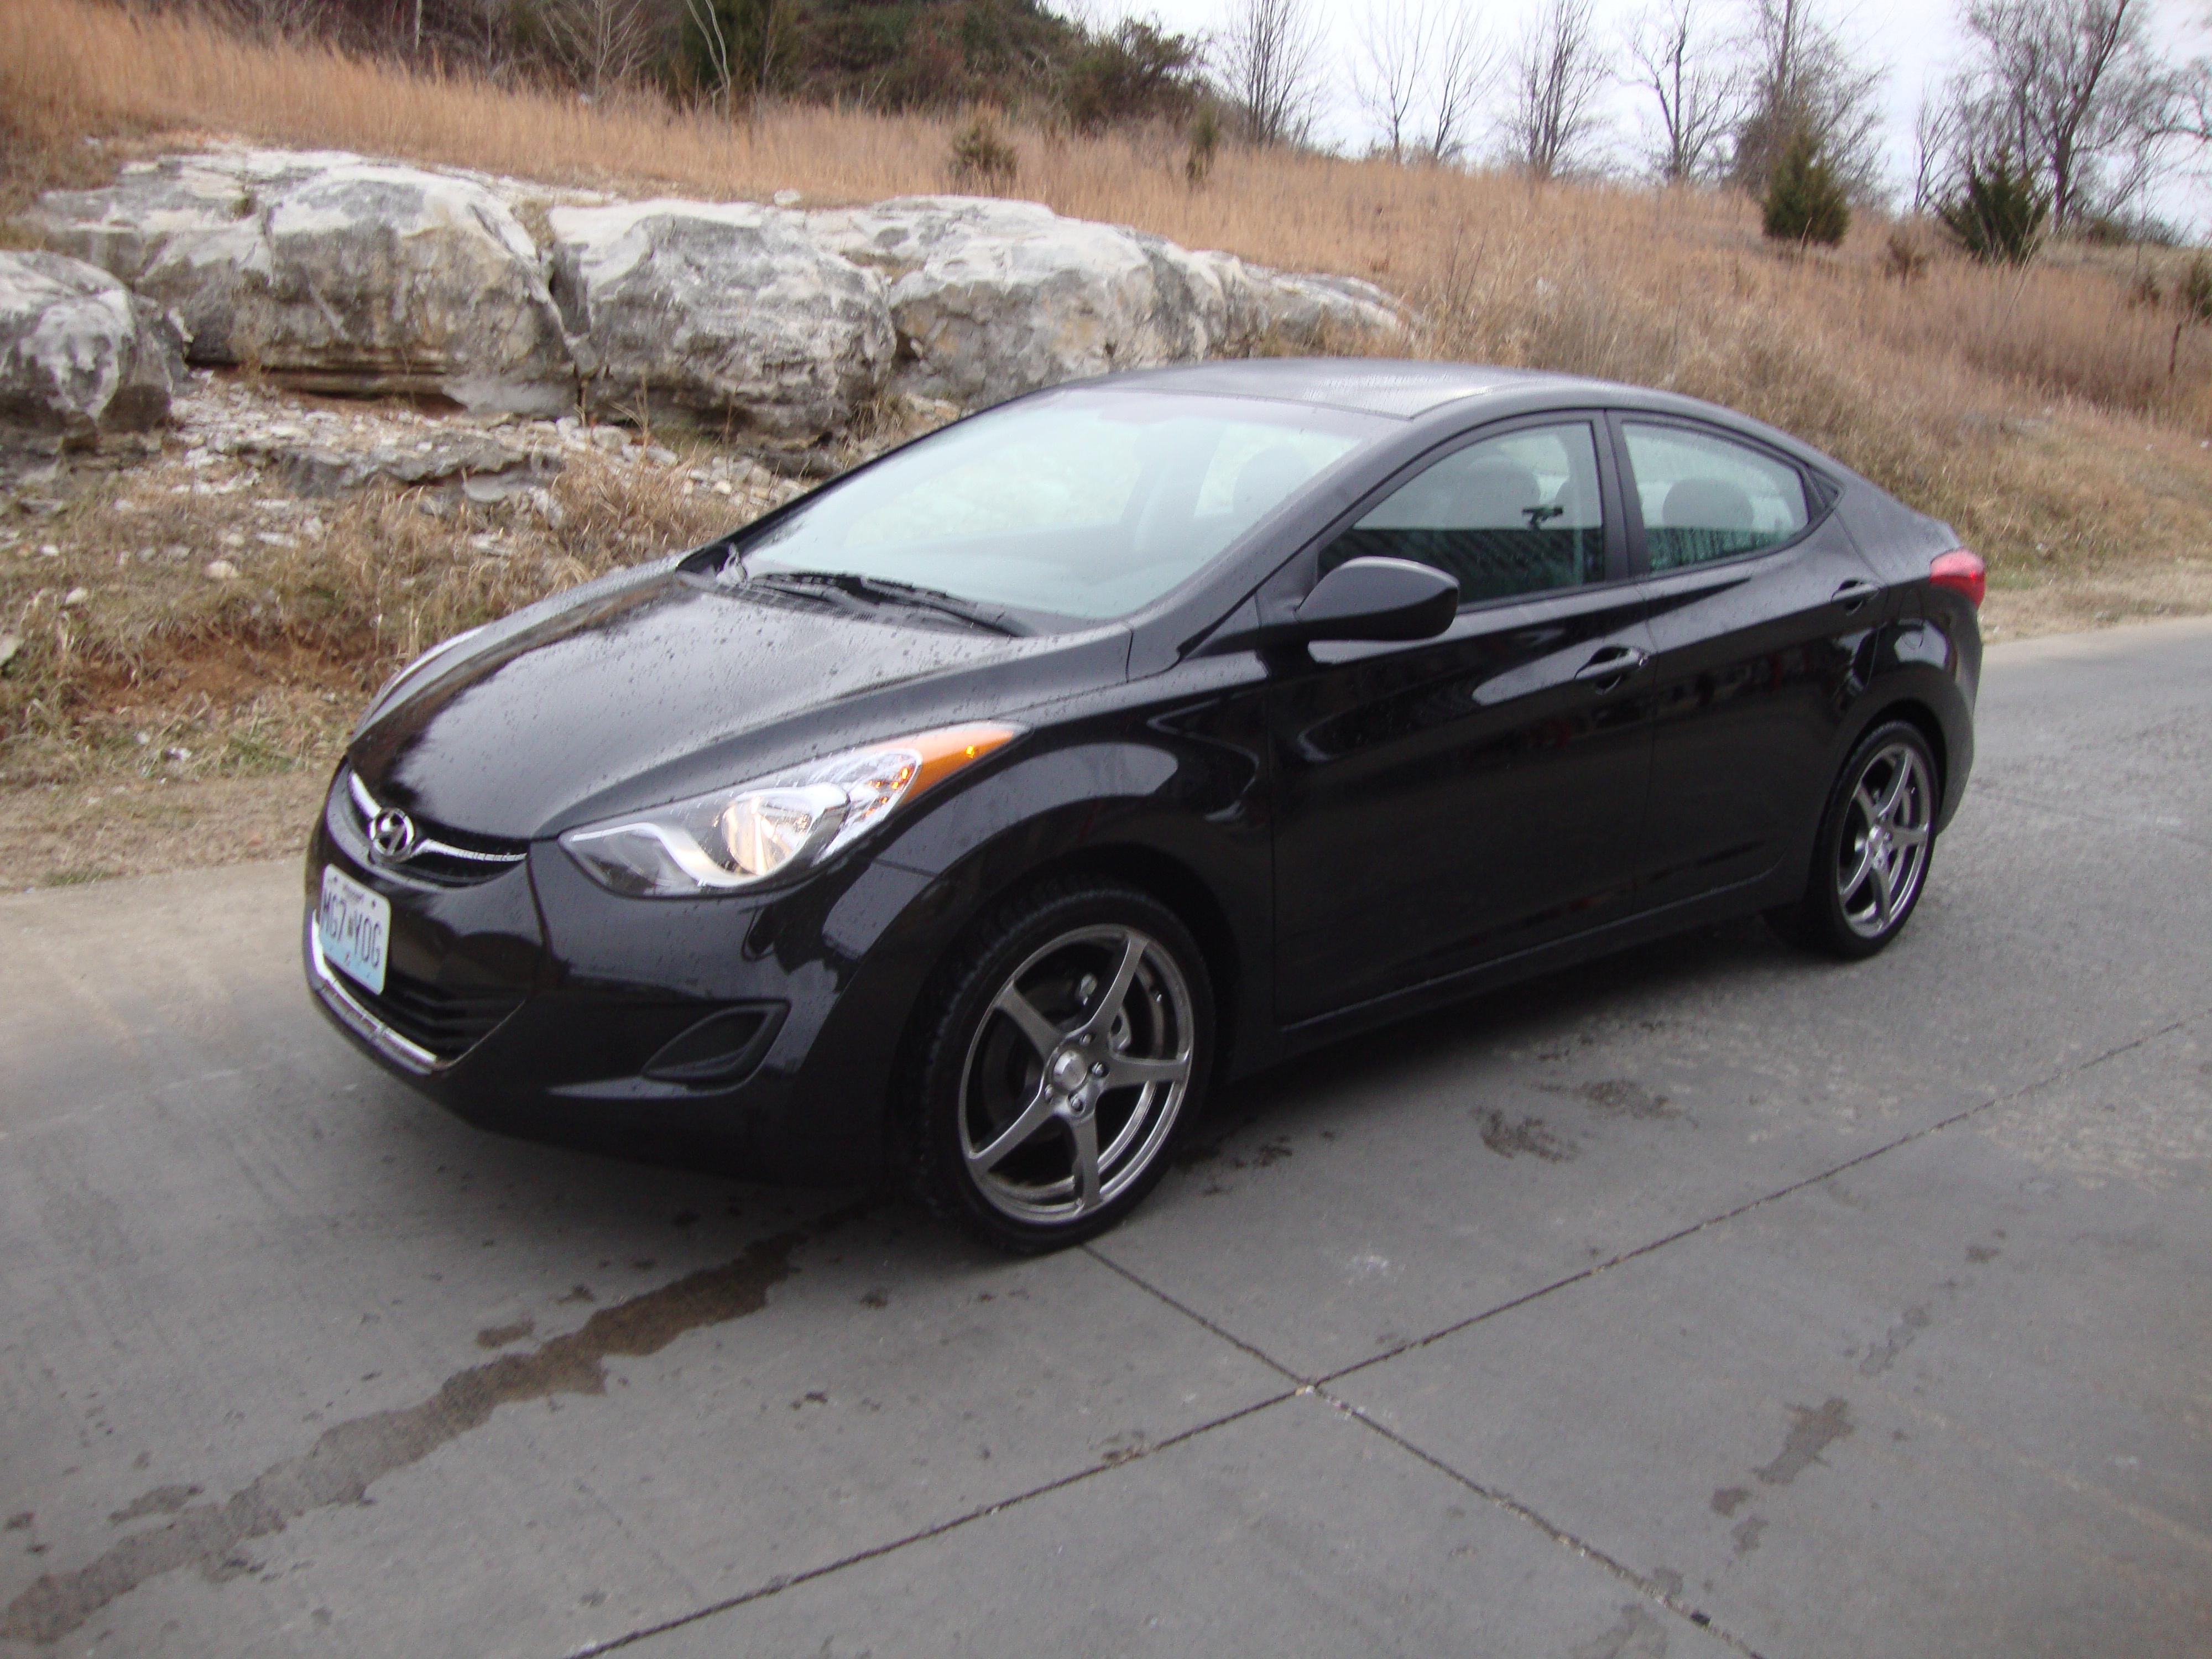 Torrent's 2011 Hyundai Elantra